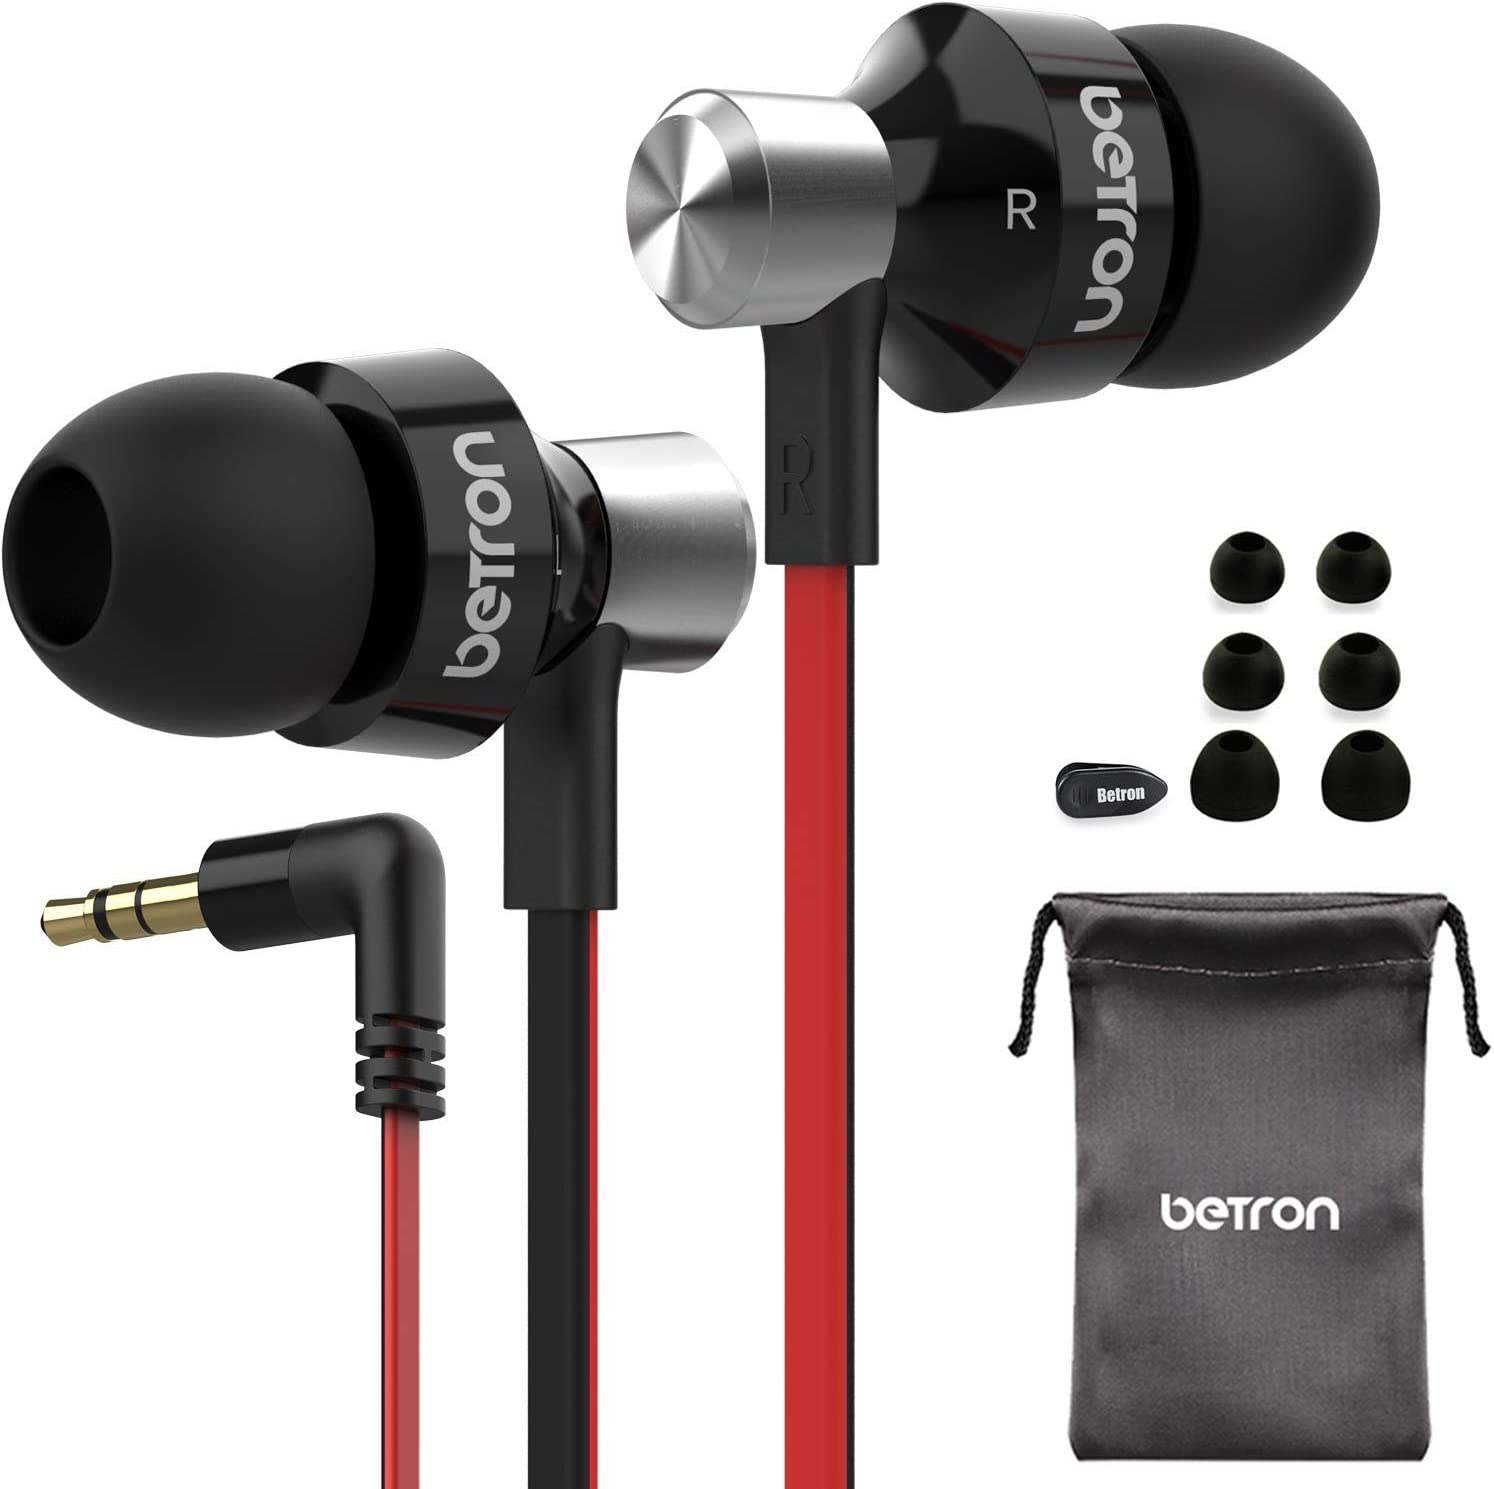 Betron DC950 Earphone, Noise Isolating, Powerful Bass, Replaceable Earbuds, Portable in Ear Headphones, Compatible with iPhone, iPad, iPod, Samsung, MP3 Players and Android Devices, Black: Electronics